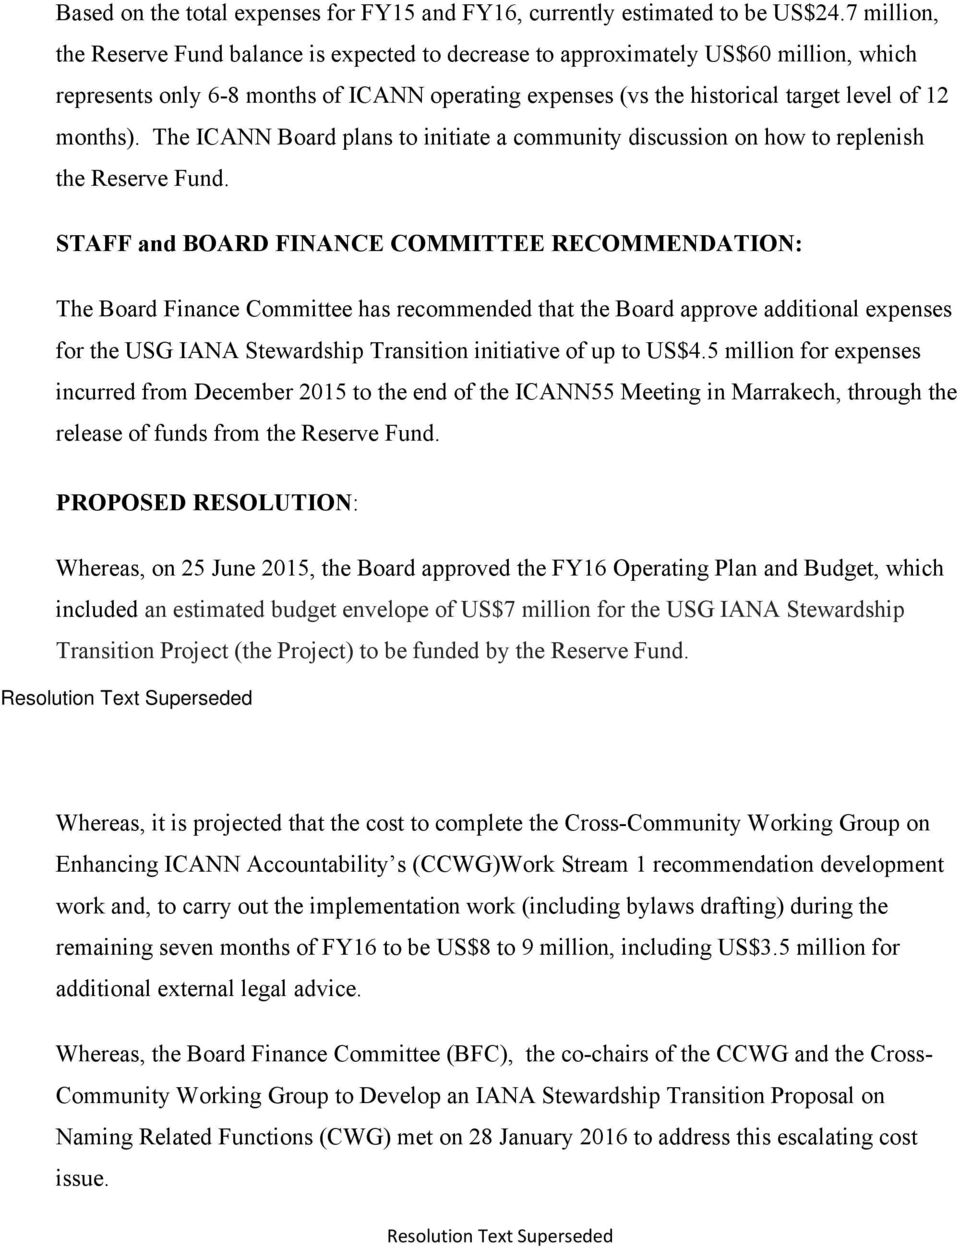 The ICANN Board plans to initiate a community discussion on how to replenish the Reserve Fund.